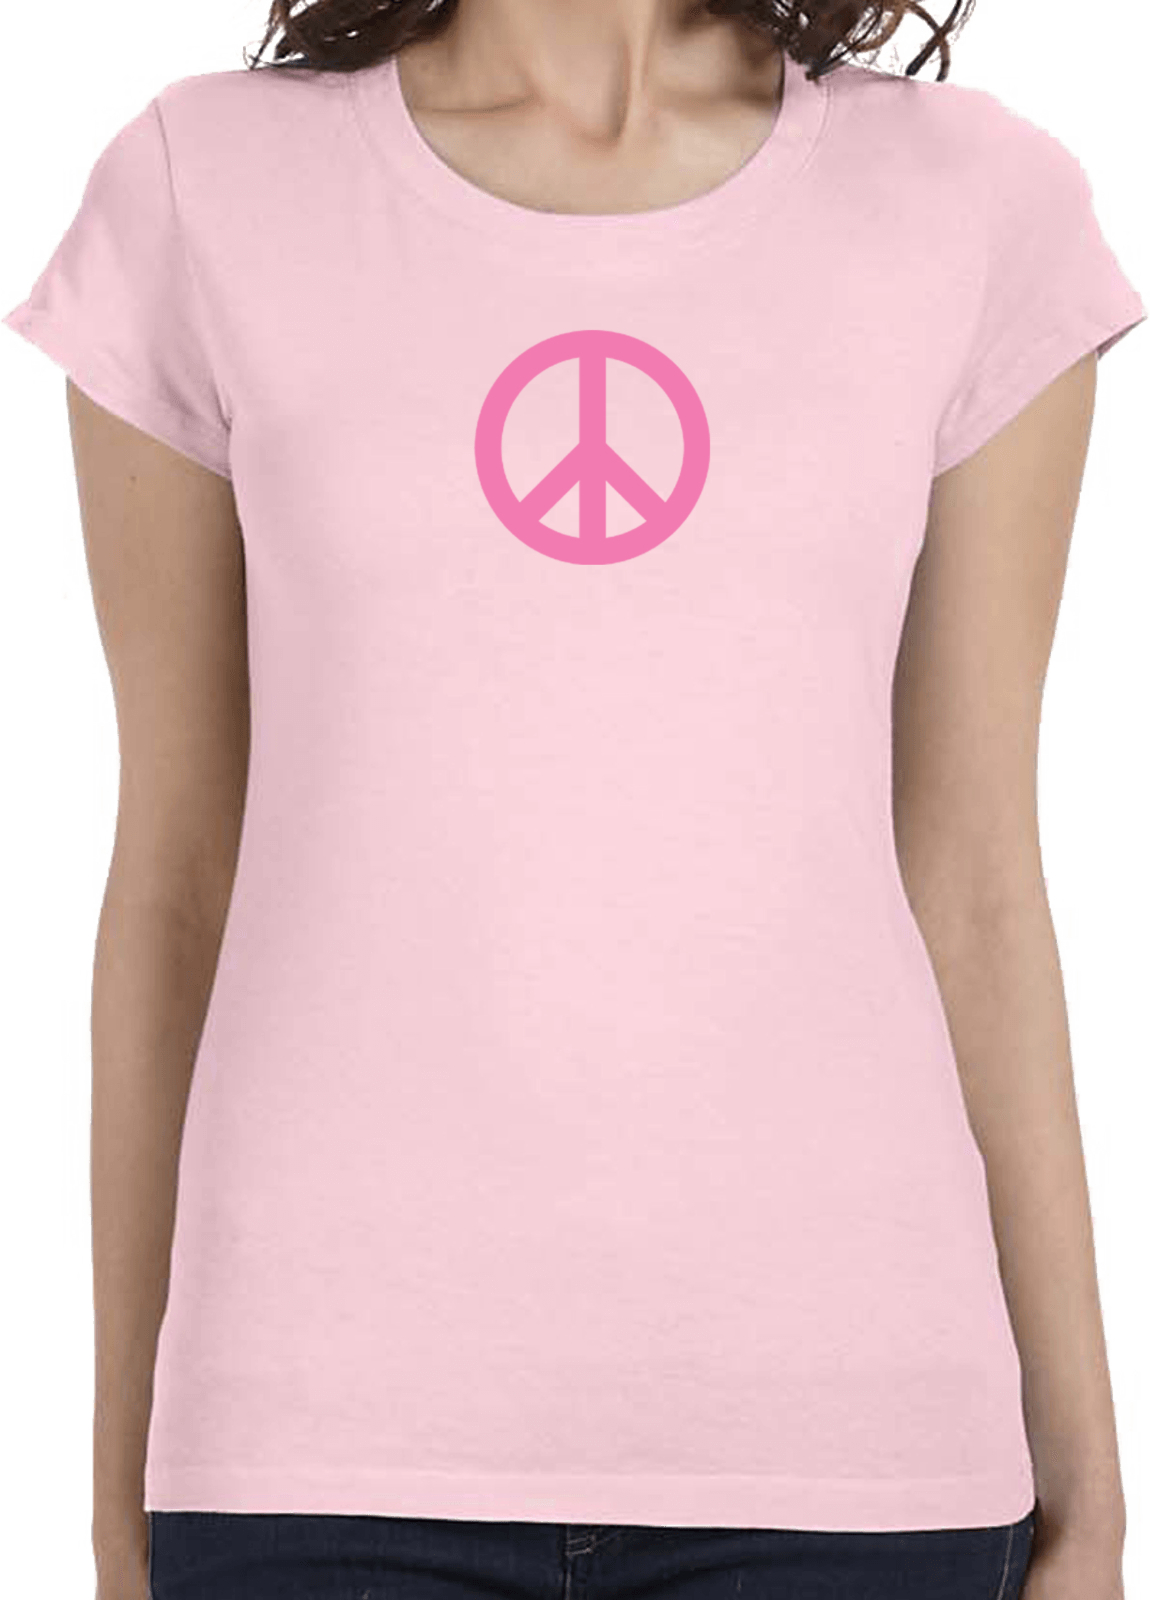 ladies peace shirt pink peace longer length tee t shirt. Black Bedroom Furniture Sets. Home Design Ideas